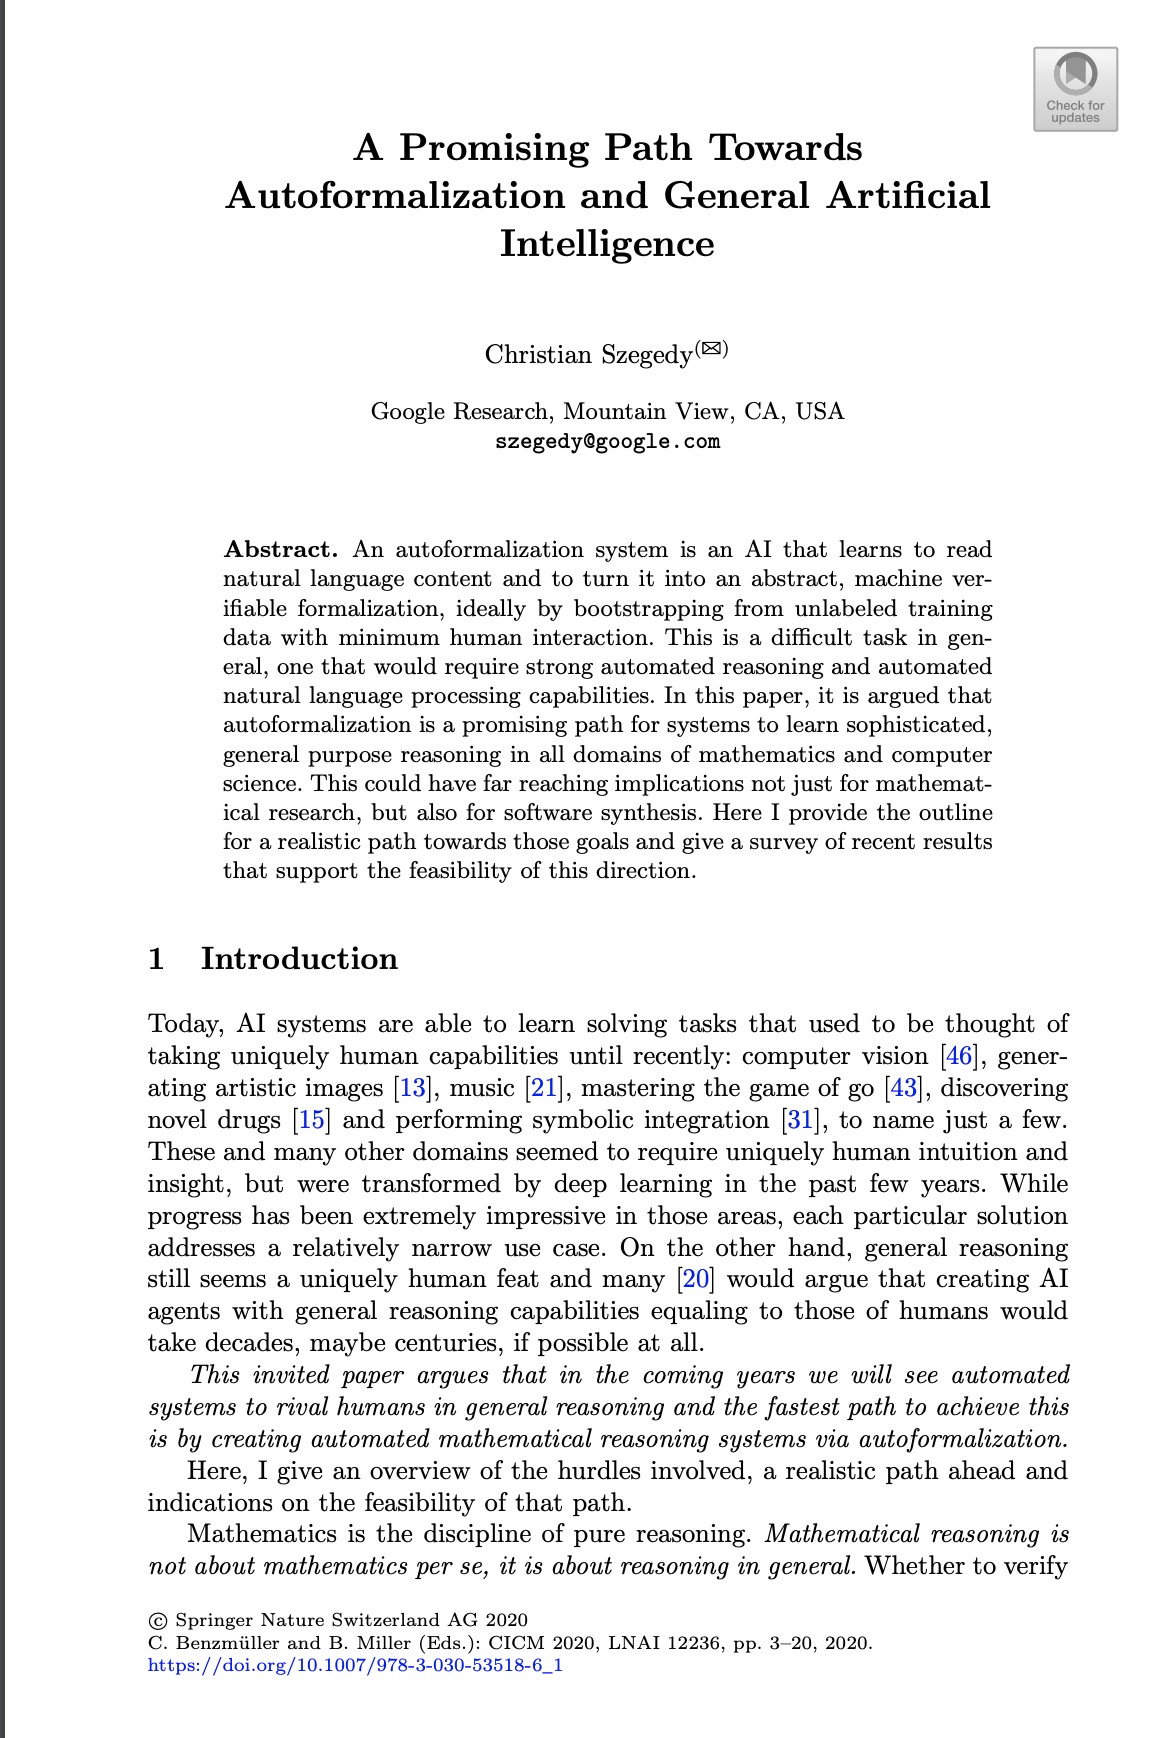 Picture of the first page of the research paper